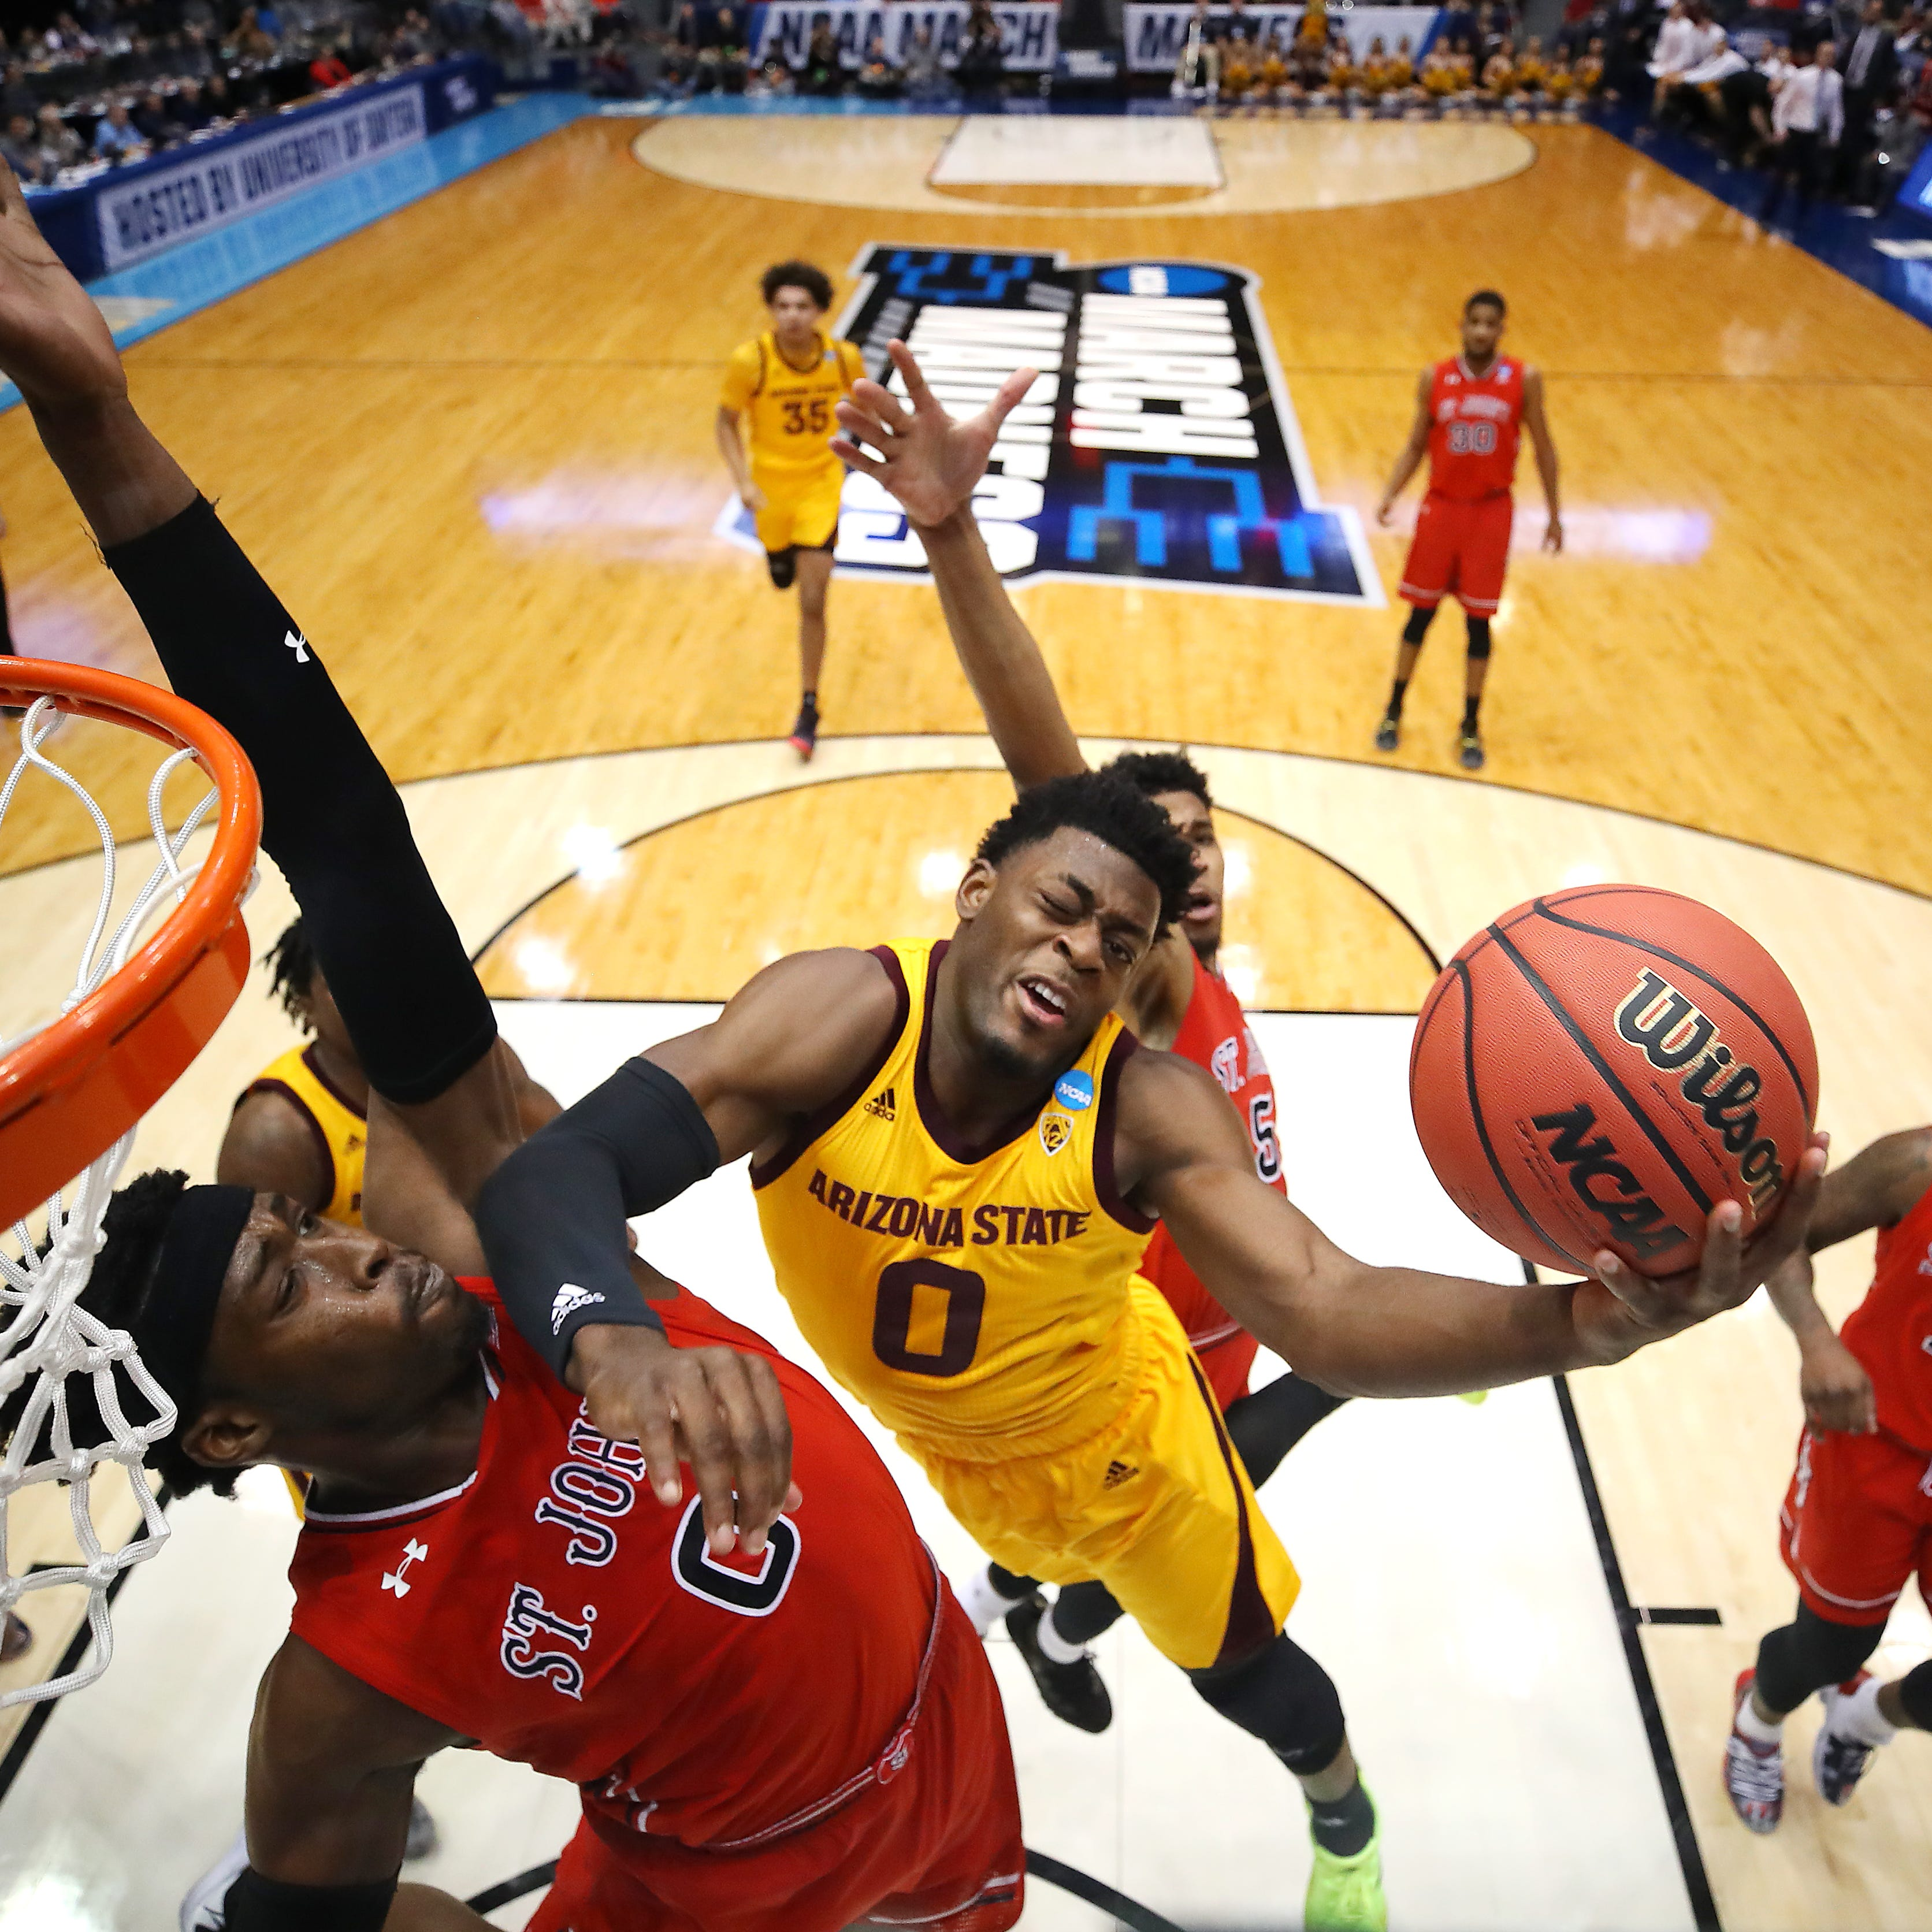 ASU men beat St. John's in First Four for first NCAA Tournament win since 2009